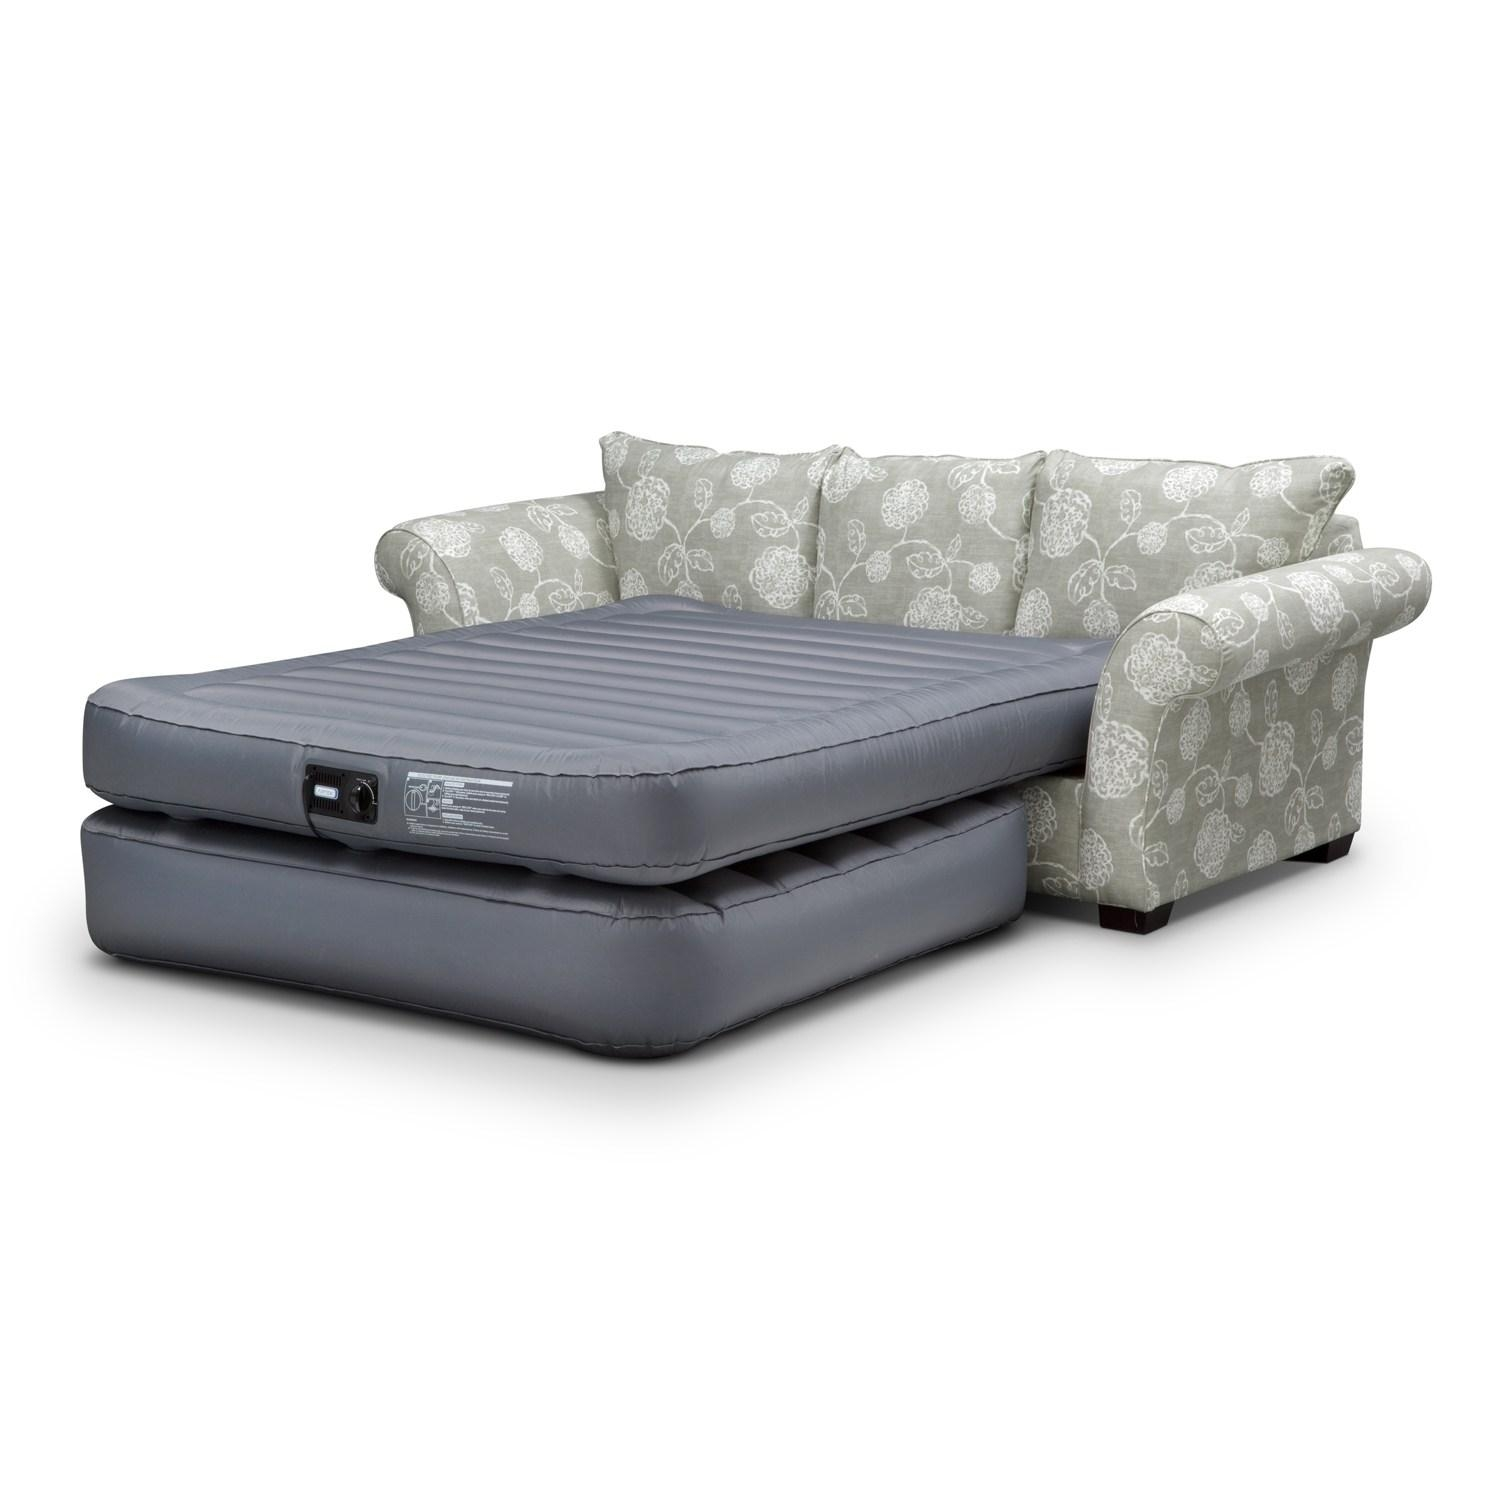 Furniture: Futon Couches At Walmart | Ava Velvet Tufted Sleeper Regarding Ava Velvet Tufted Sleeper Sofas (Image 6 of 20)